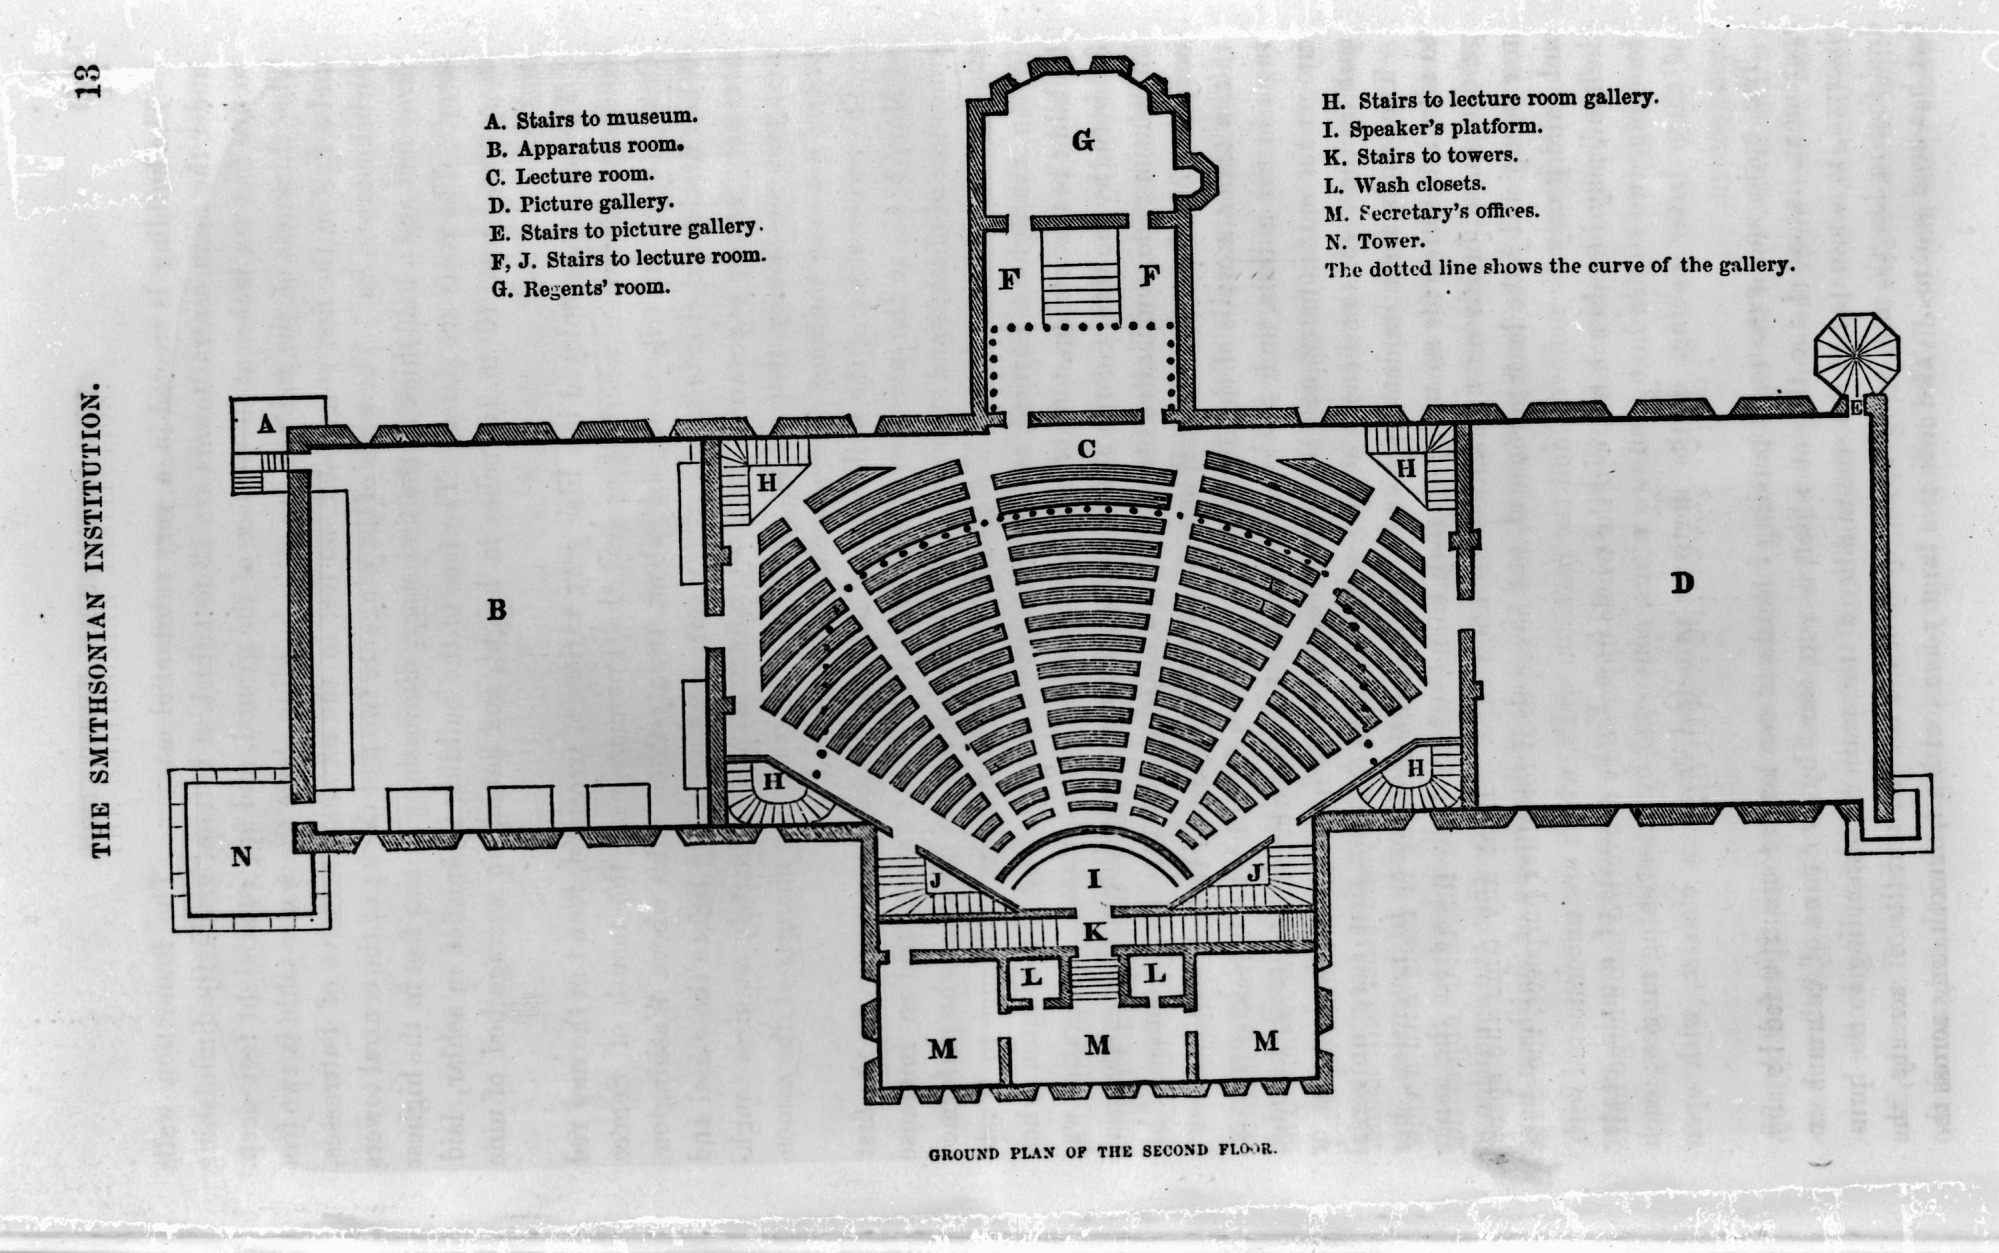 Image of Smithsonian Institution Building floor plan from the new Guidebook, 1856. Smithsonian Institution Archives, negative number mah-43804j.